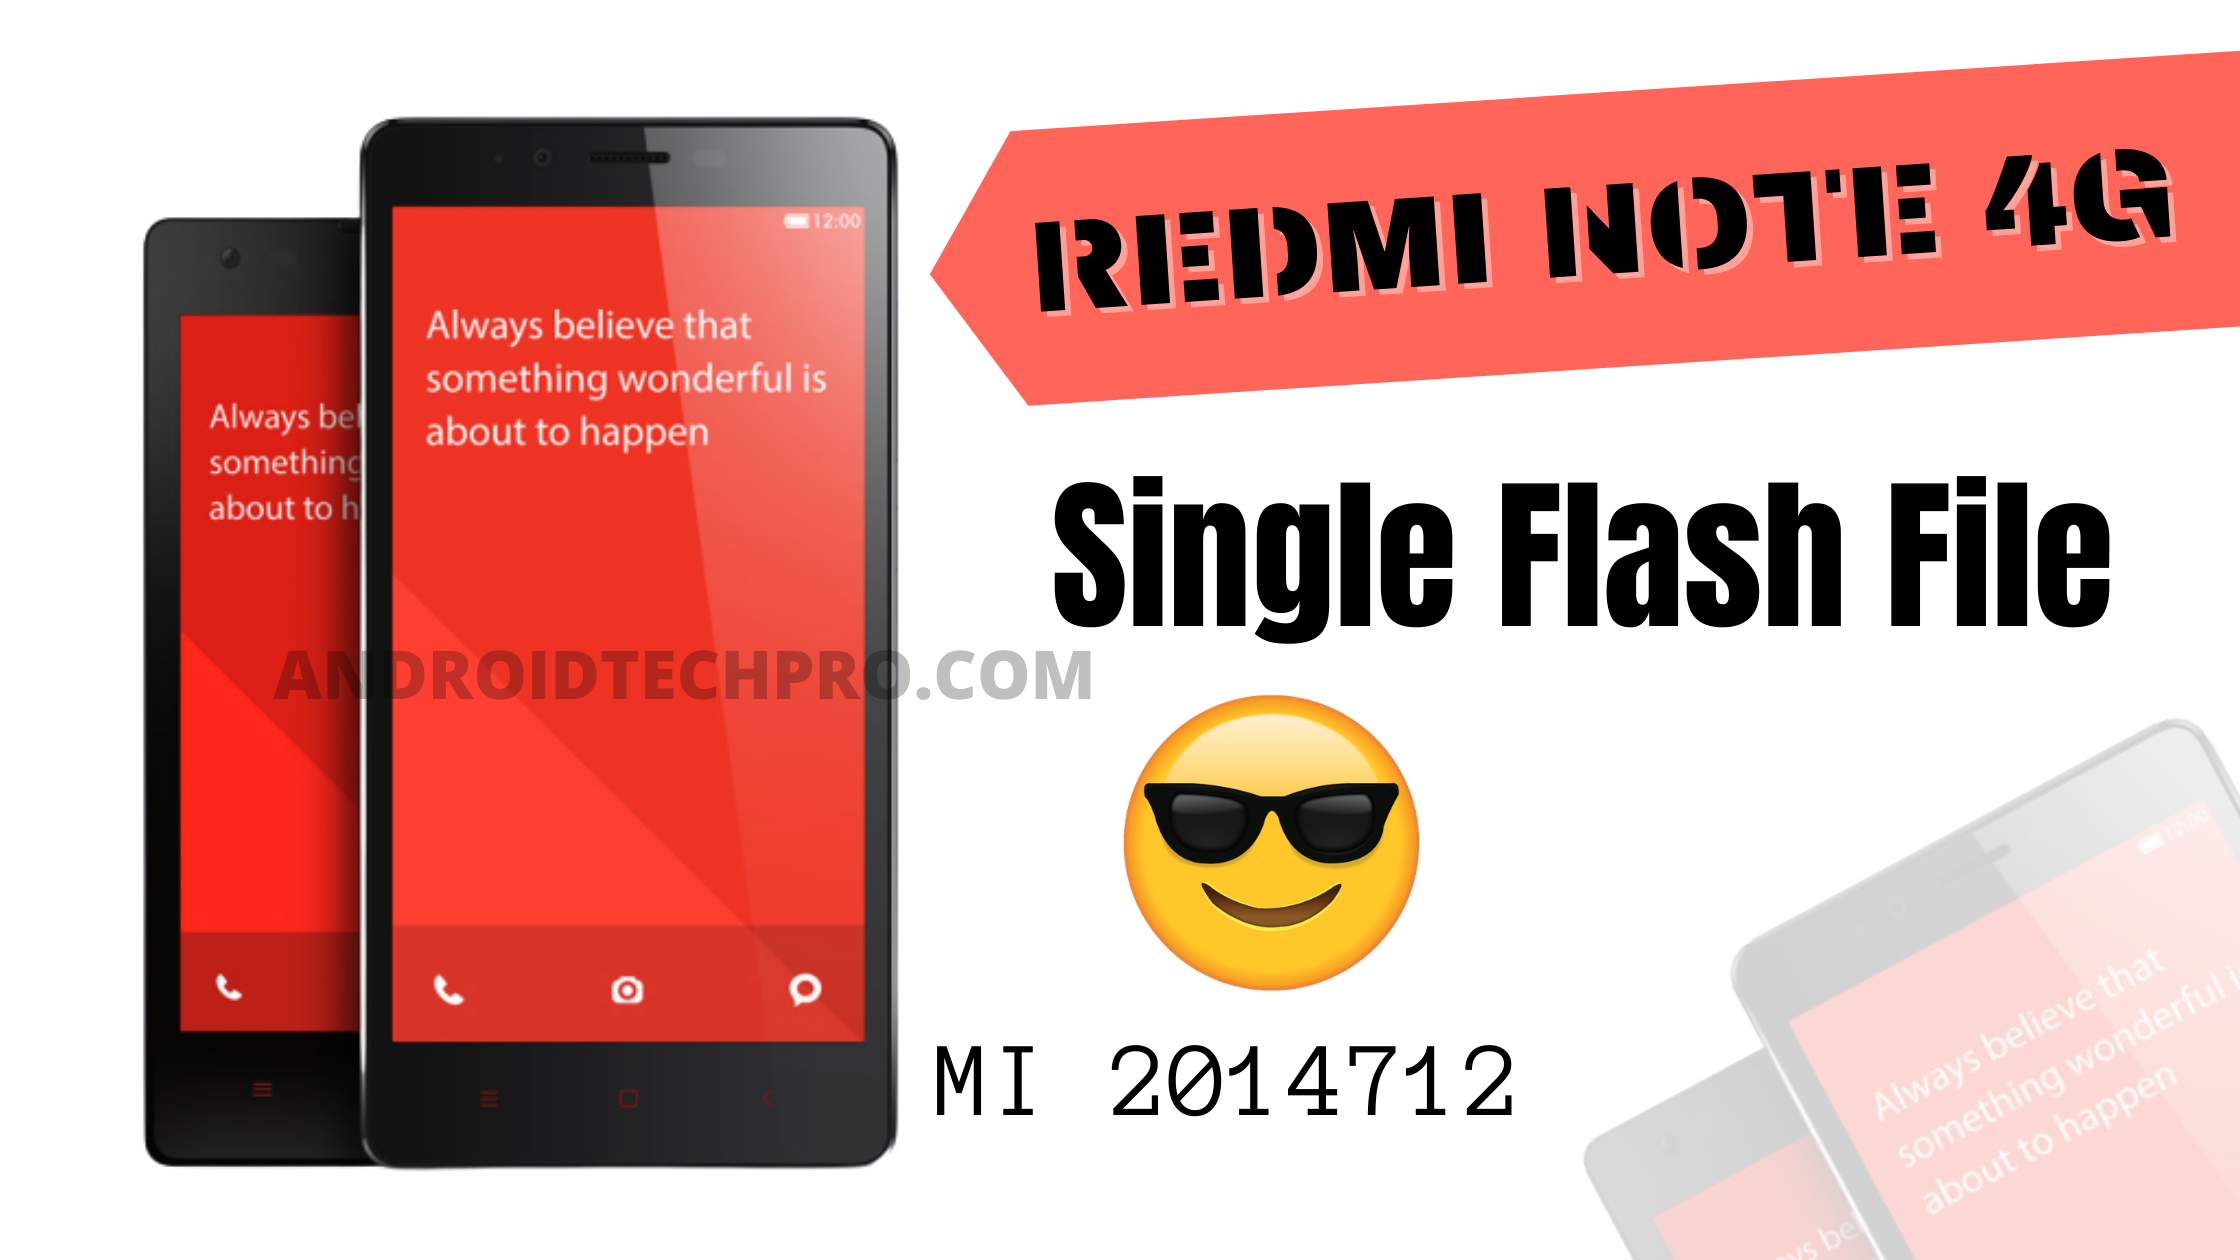 mi 2014712 single sim flash file